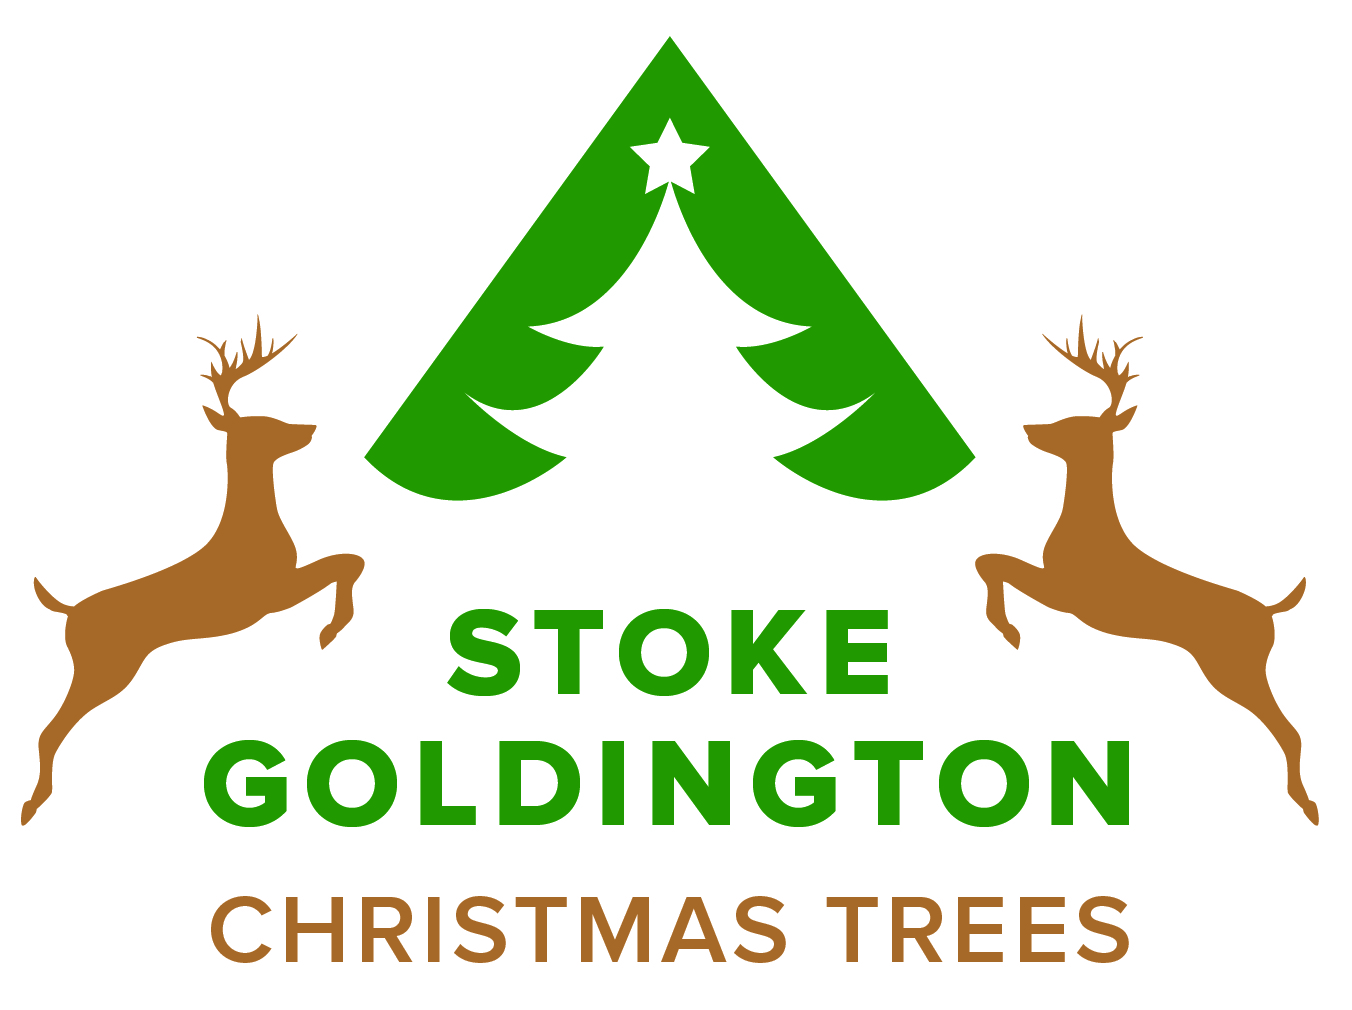 Stoke Goldington Christmas Trees